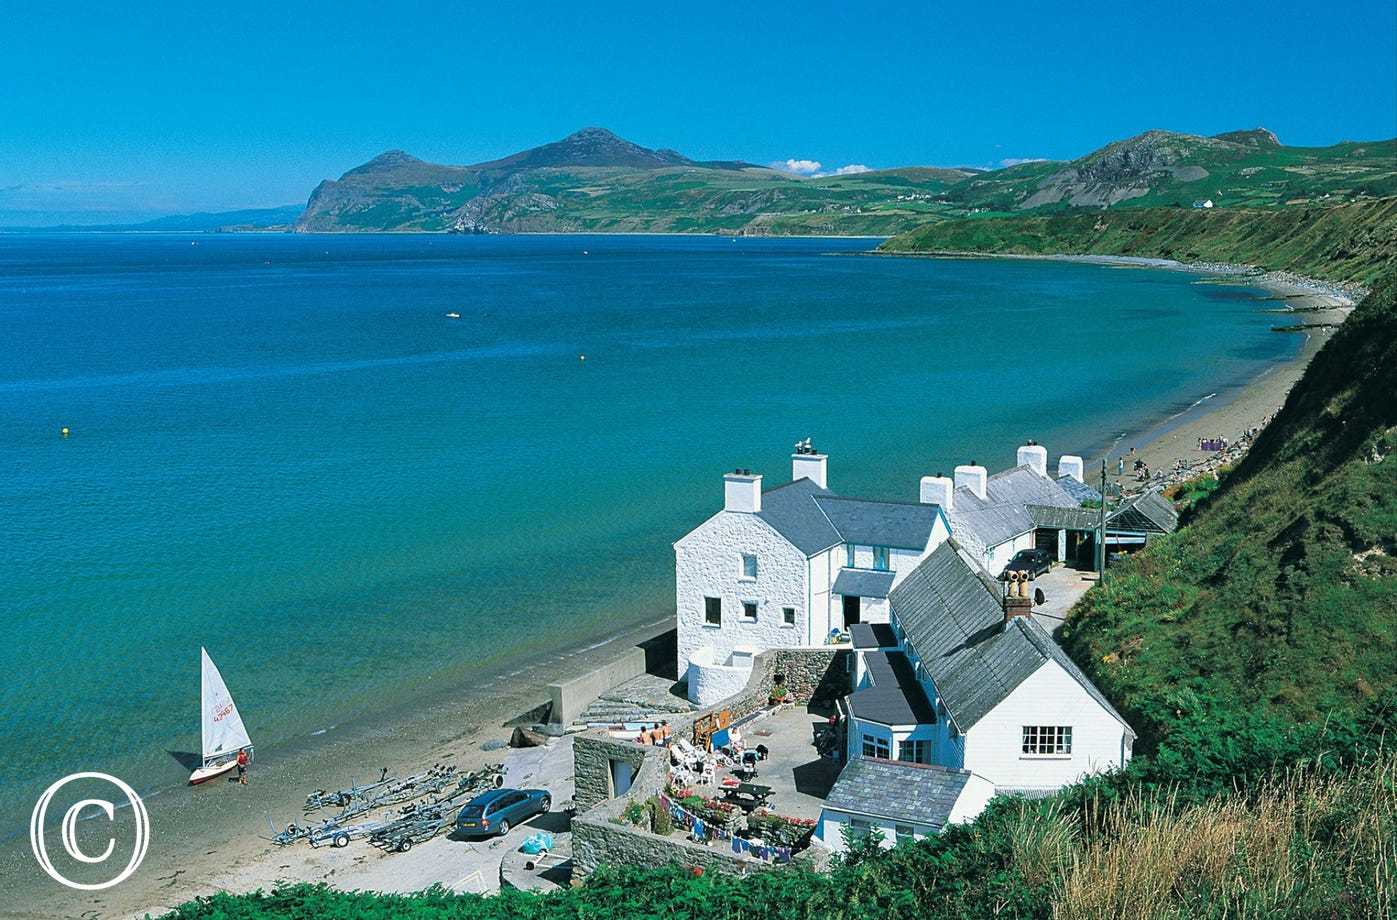 Ty Coch Inn at Porthdinllaen (11 miles) was voted 3rd best beach pub in the world